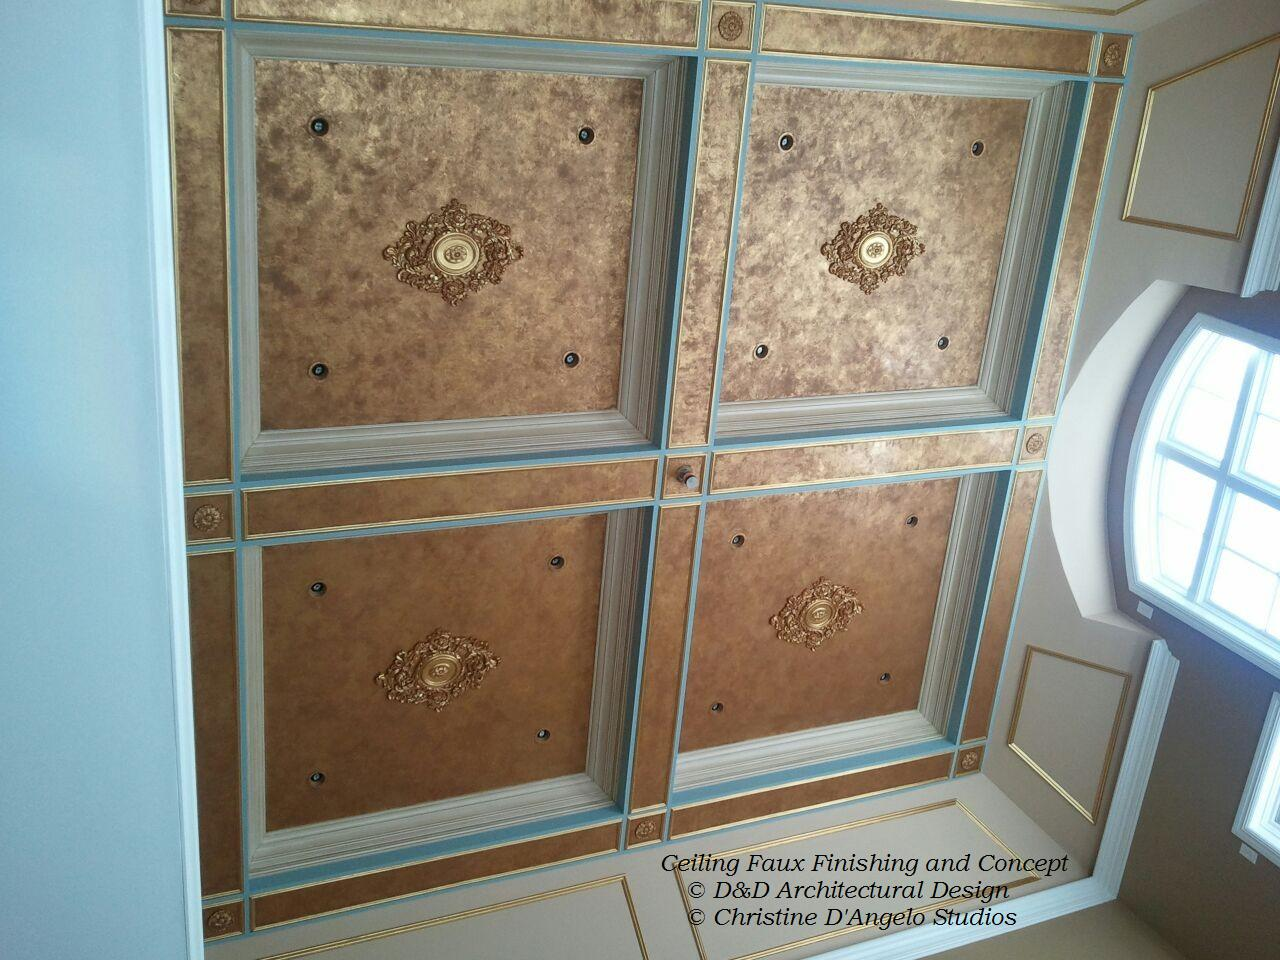 Gilded textured ceiling